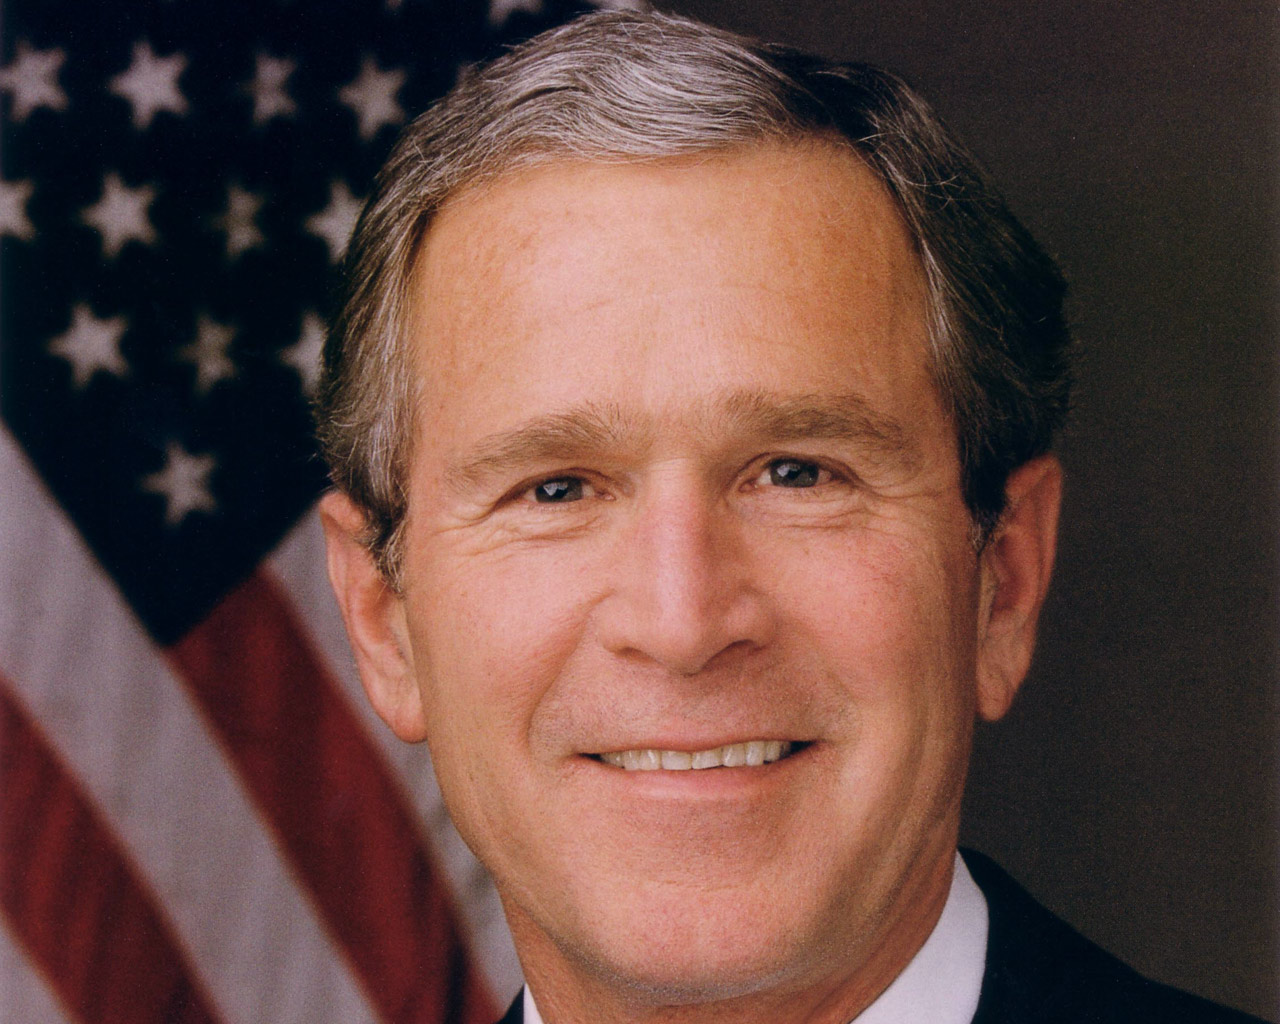 George W. Bush, 43th US President